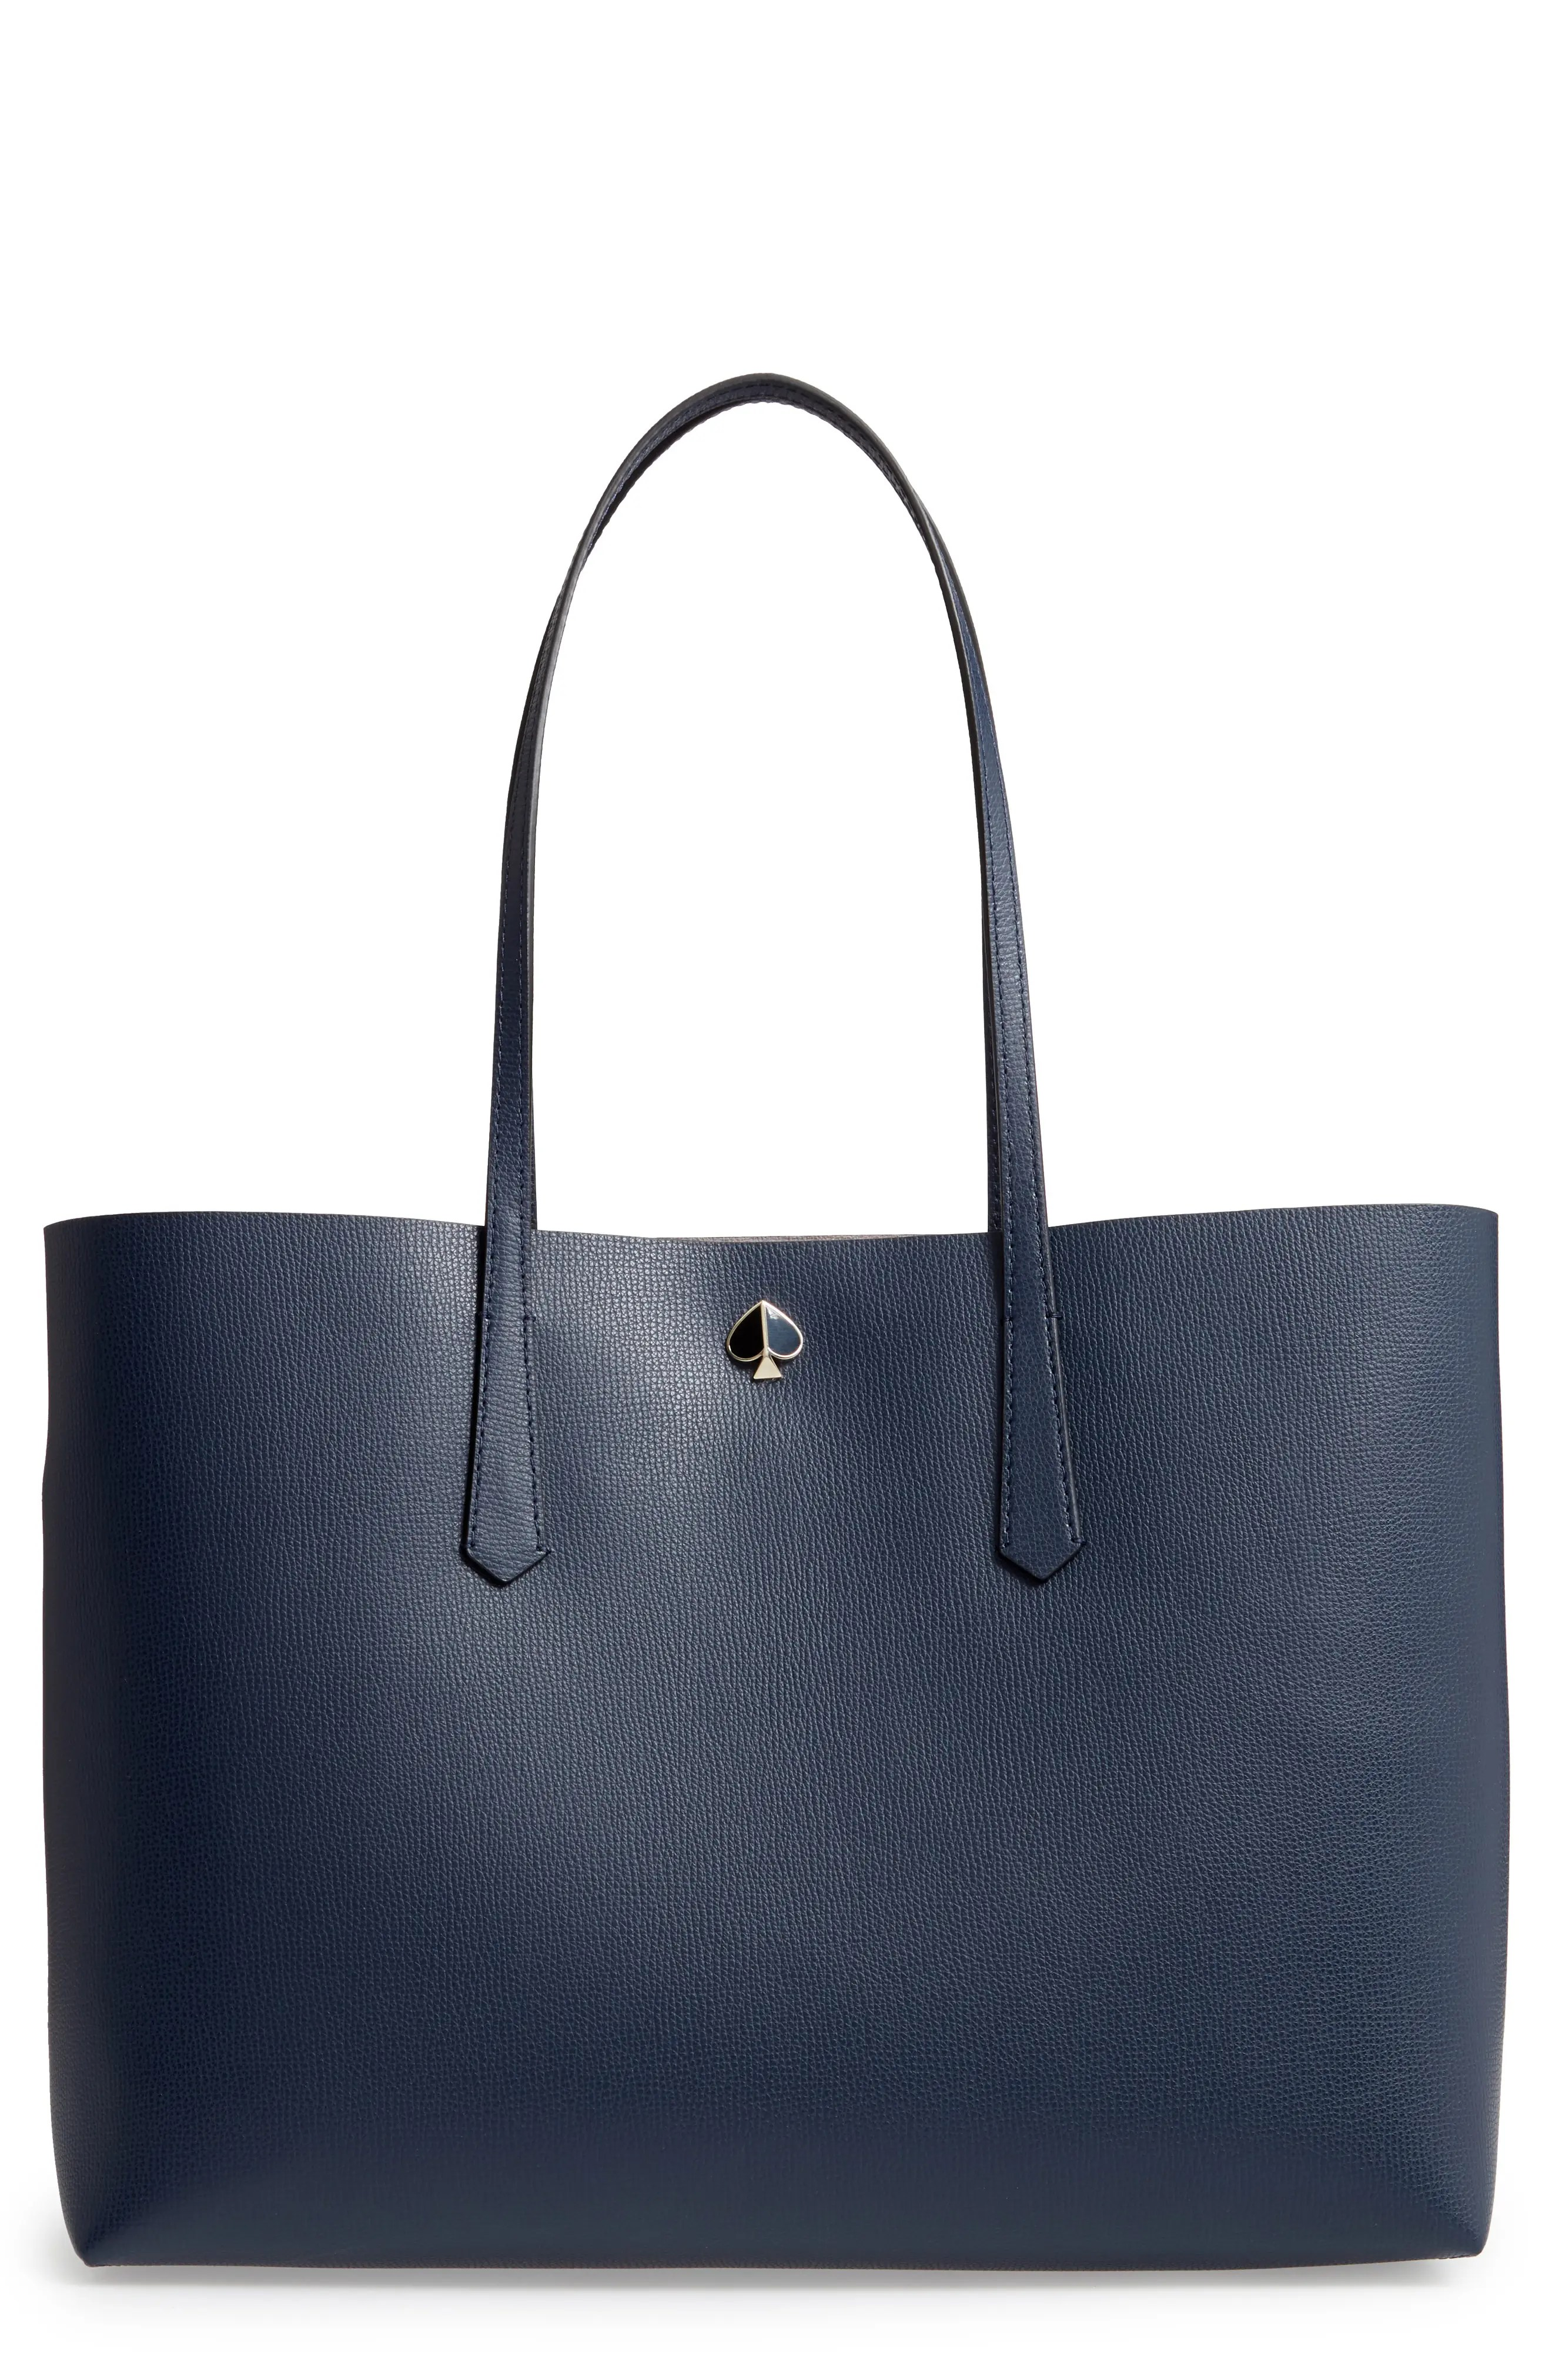 kate spade new york large molly leather tote nordstrom rack